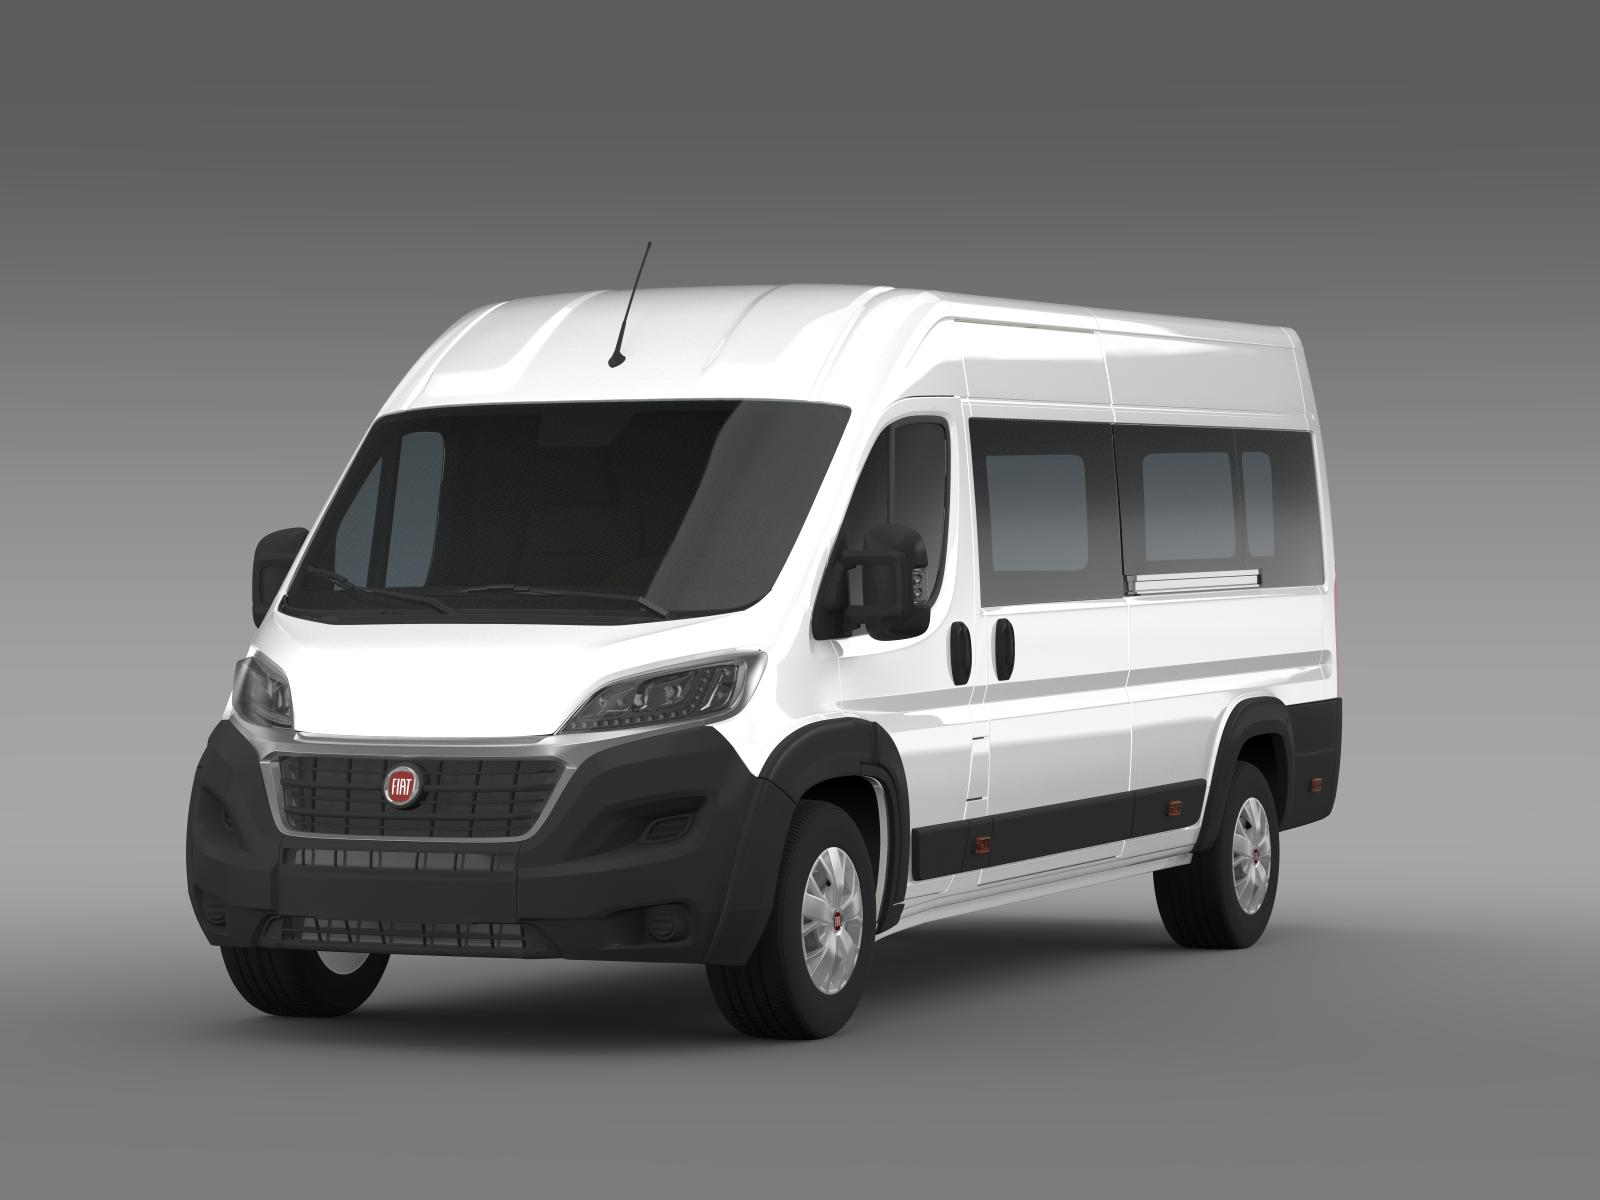 fiat ducato maxi minibus 2015 3d model flatpyramid. Black Bedroom Furniture Sets. Home Design Ideas